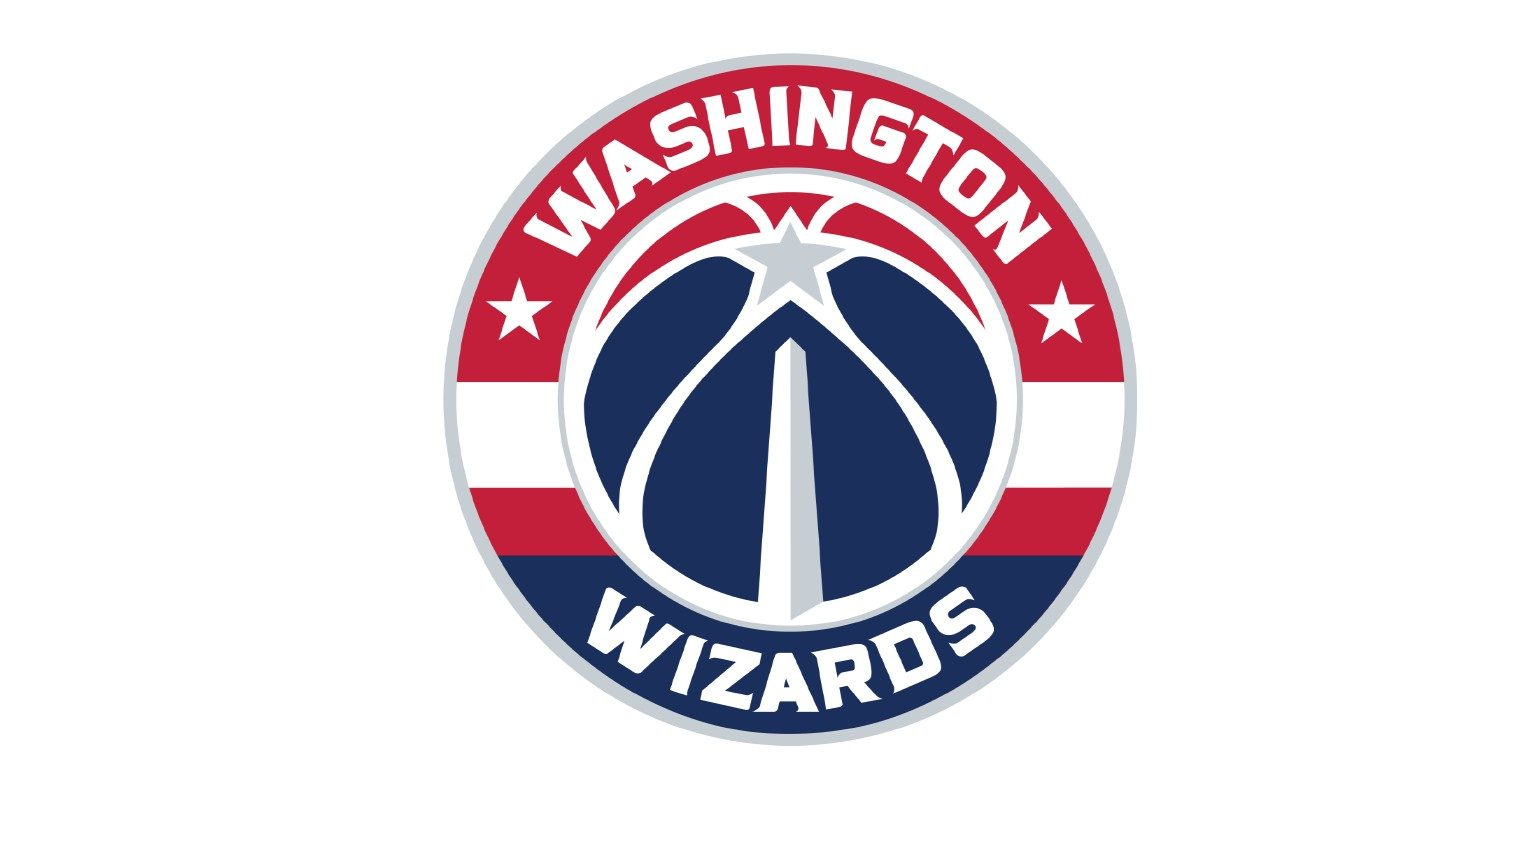 Washitong Wizards Logo